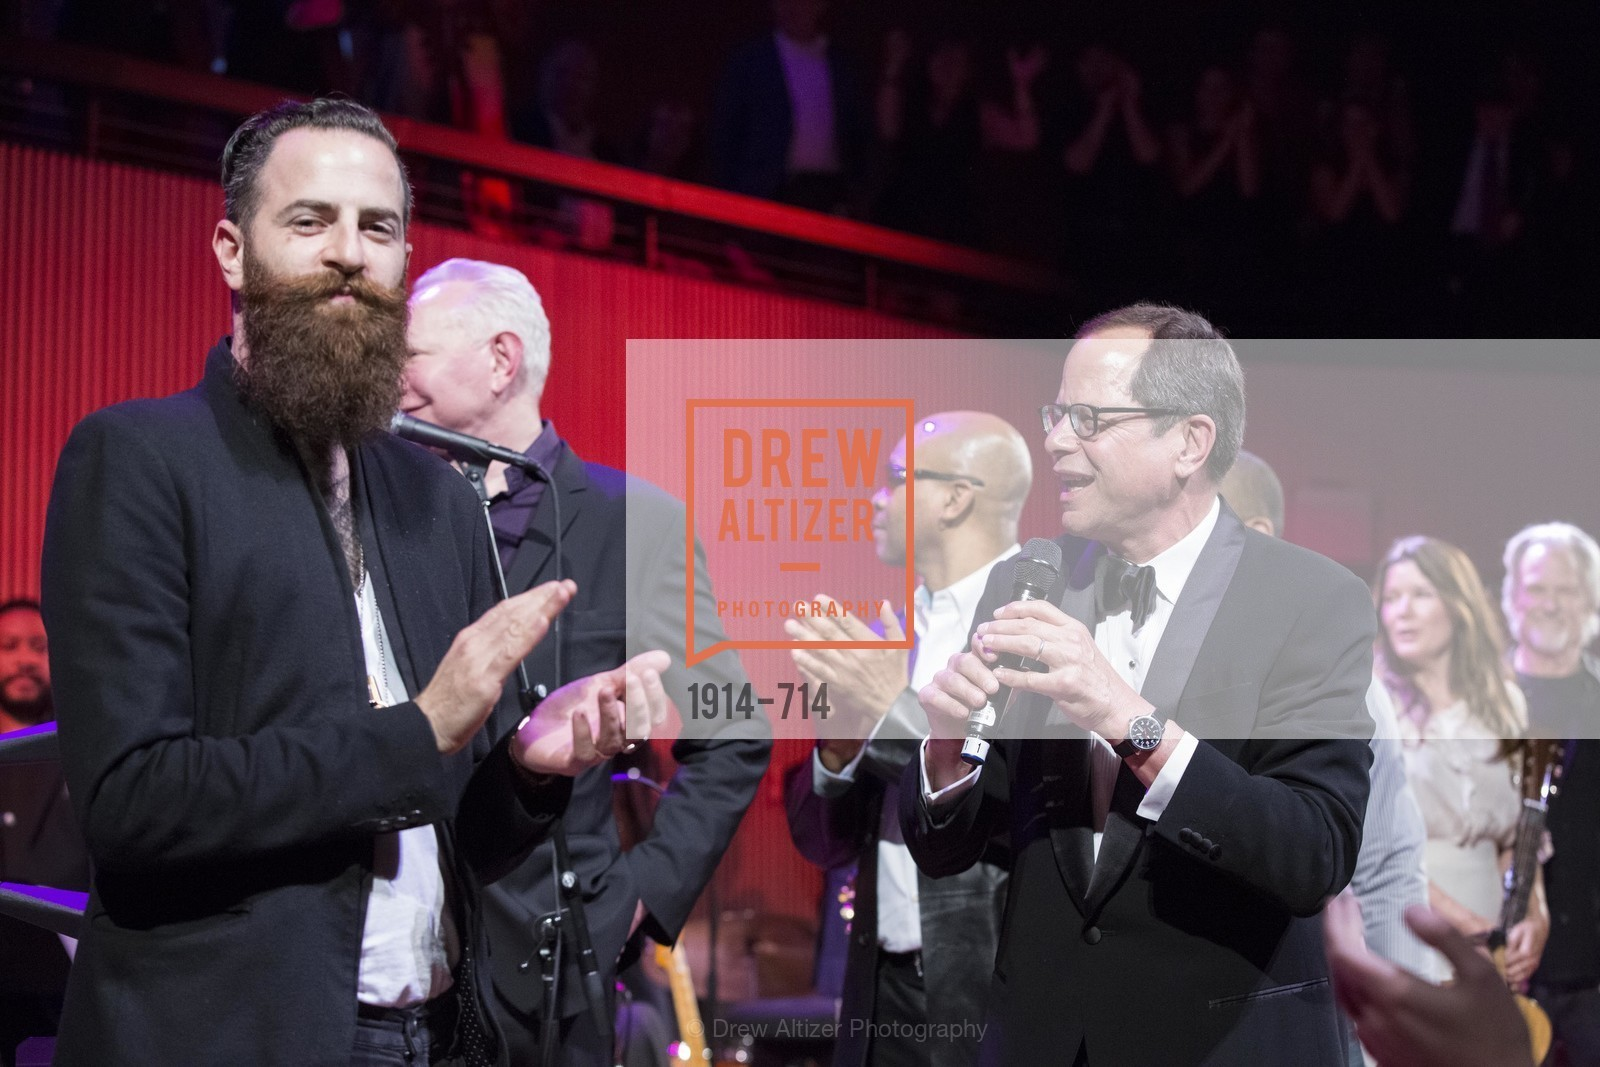 Avashai Cohen, Randall Kline, SFJAZZ Gala 2015 Honors Joni Mitchell with Lifetime Achievement Award, US, May 9th, 2015,Drew Altizer, Drew Altizer Photography, full-service agency, private events, San Francisco photographer, photographer california